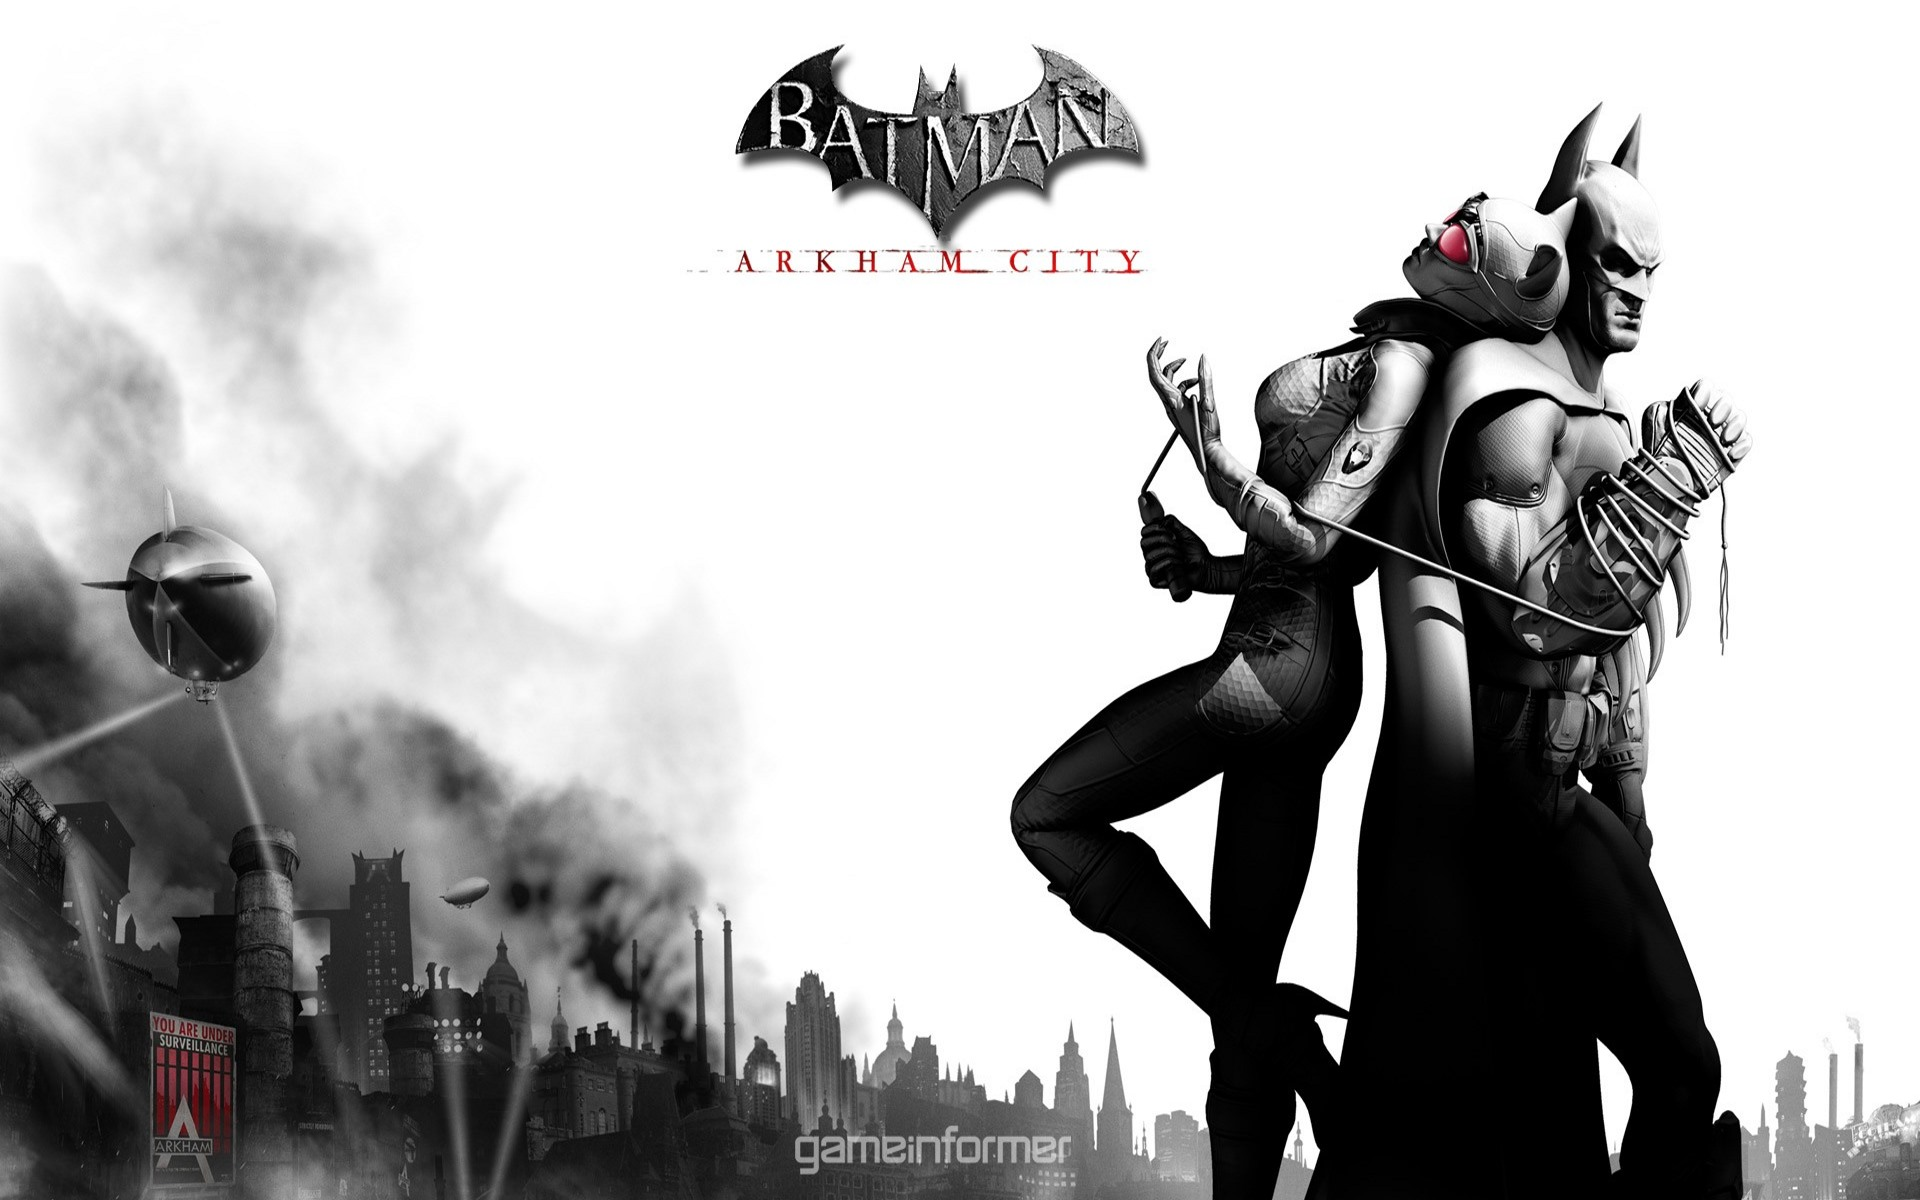 BatmaN Arkham City wallpapers BatmaN Arkham City stock photos 1920x1200